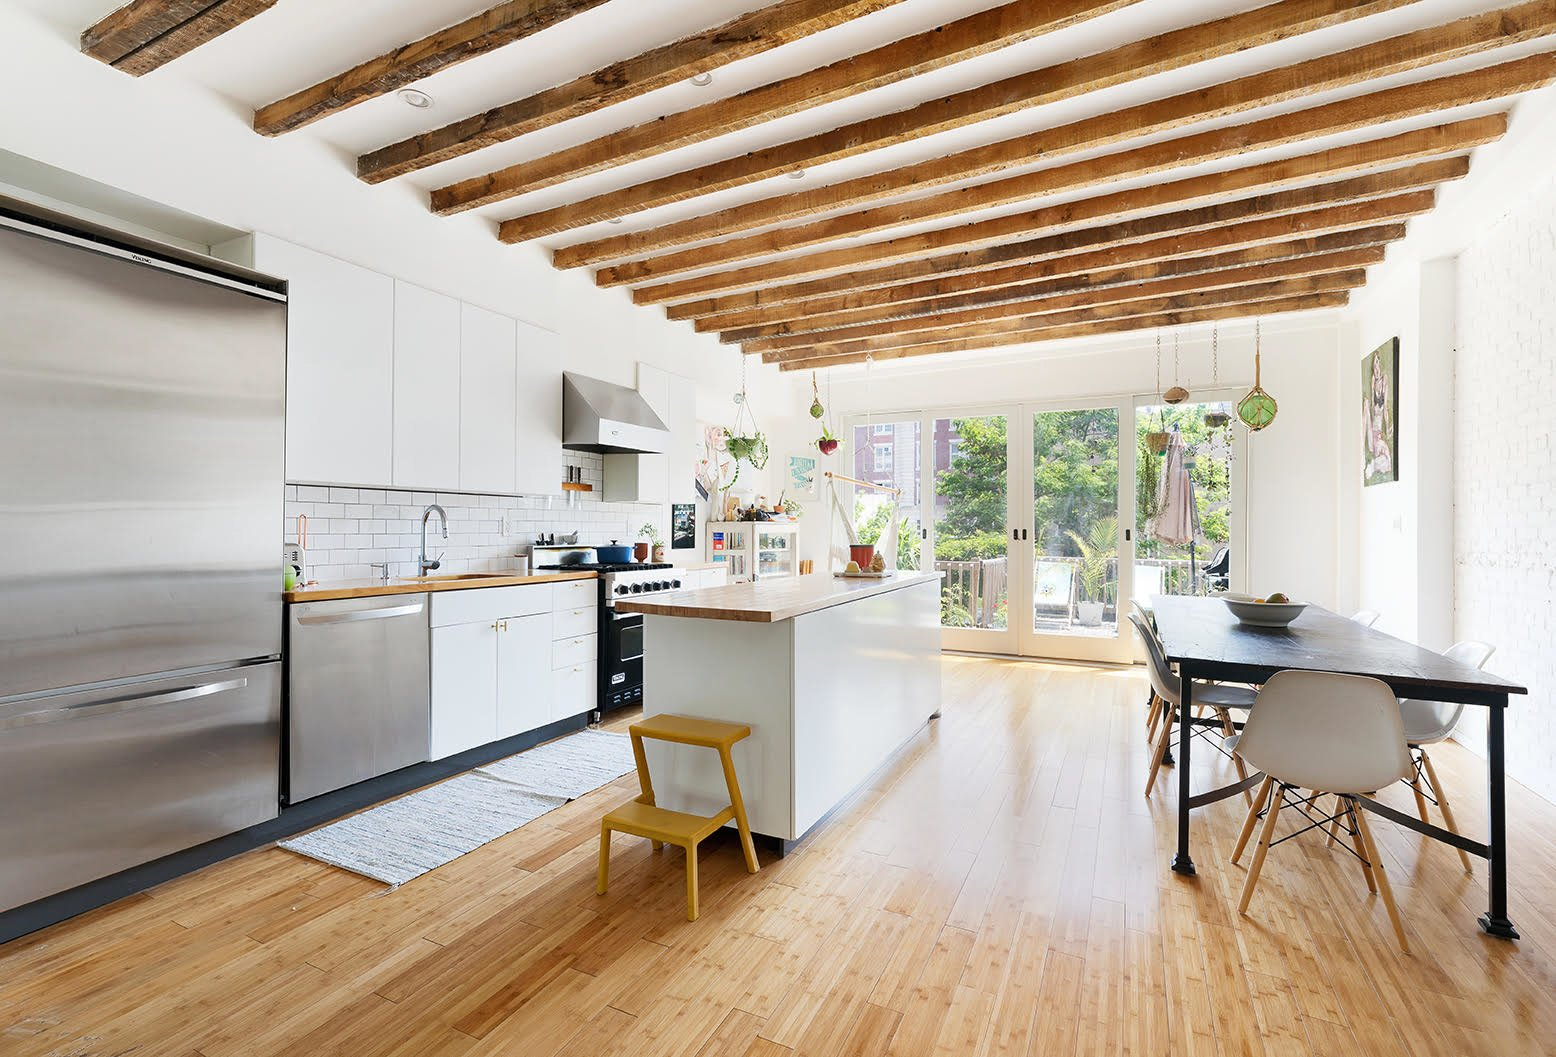 Exposed beams continue into the upper-level kitchen. Sliding glass doors provide natural light and lead out to a private deck.  Photo 3 of 8 in A Brooklyn Townhouse Reimagined as a Crisp, Loft-Like Duplex Asks $2.75M